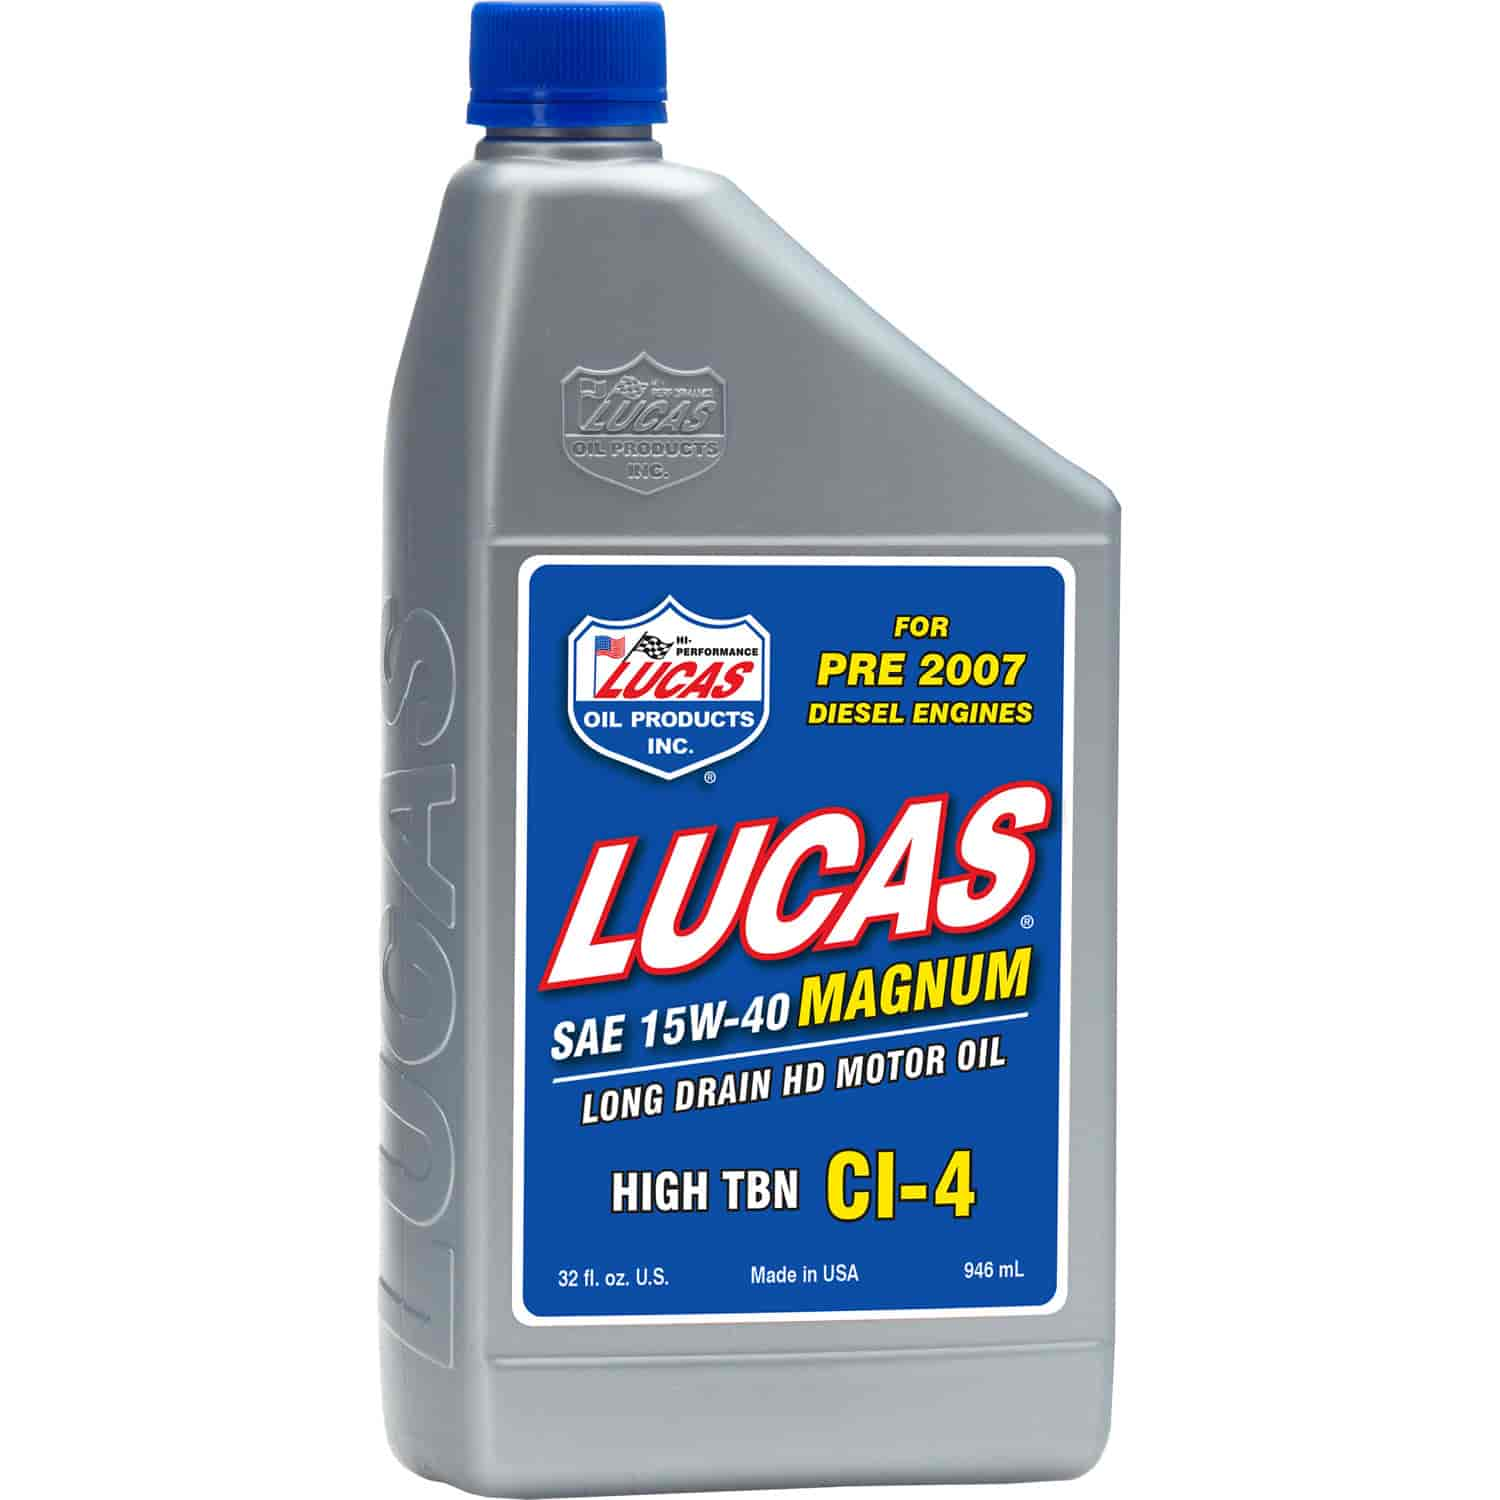 Lucas Oil 10075 - Lucas Oil 15W-40 Magnum High TBN CI-4 Oil